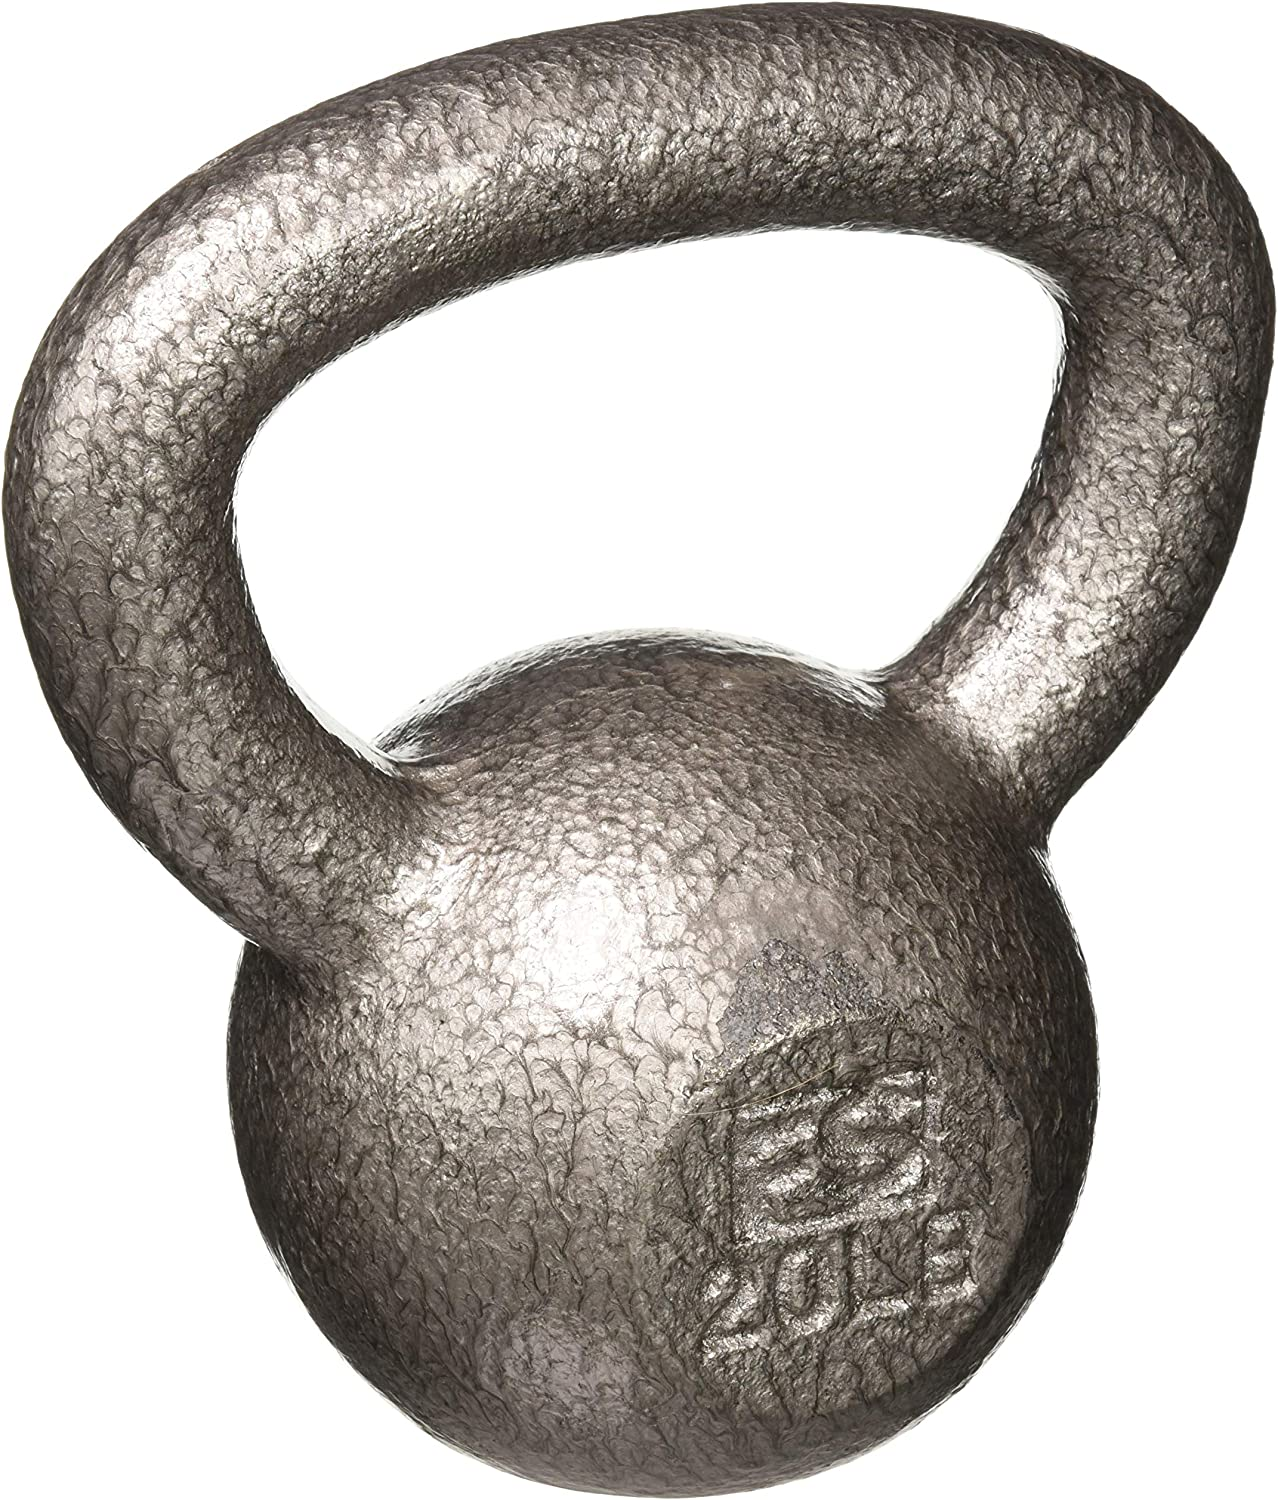 Kettlebell Weights Vinyl Coated Iron by Day 1 Fitness- 10 Sizes Available, 5-50 Pounds – Coated for Floor and Equipment Protection, Noise Reduction – Free Weights For Ballistic, Core, Weight Training